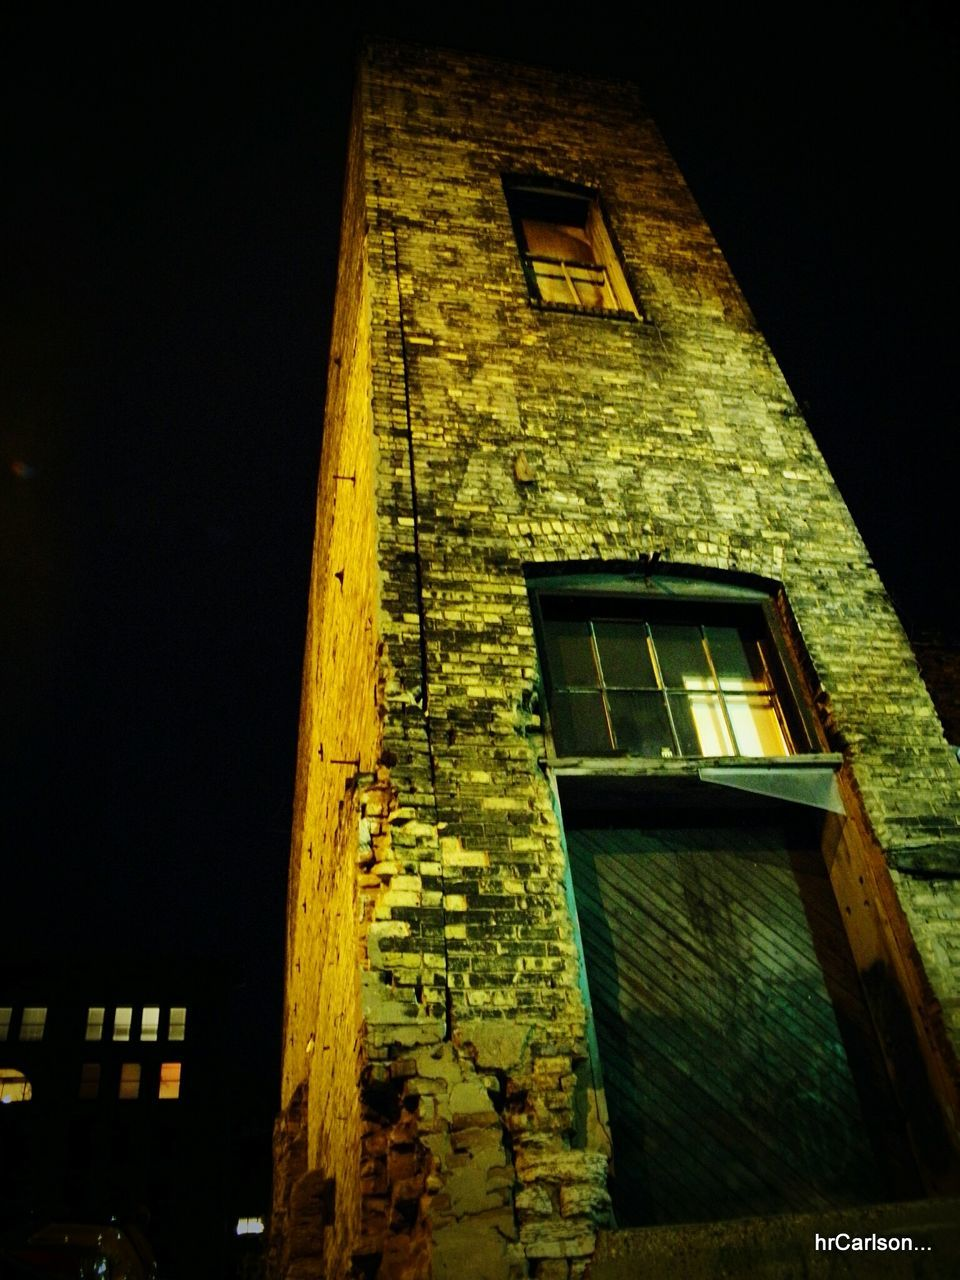 building exterior, architecture, built structure, window, low angle view, no people, outdoors, night, illuminated, sky